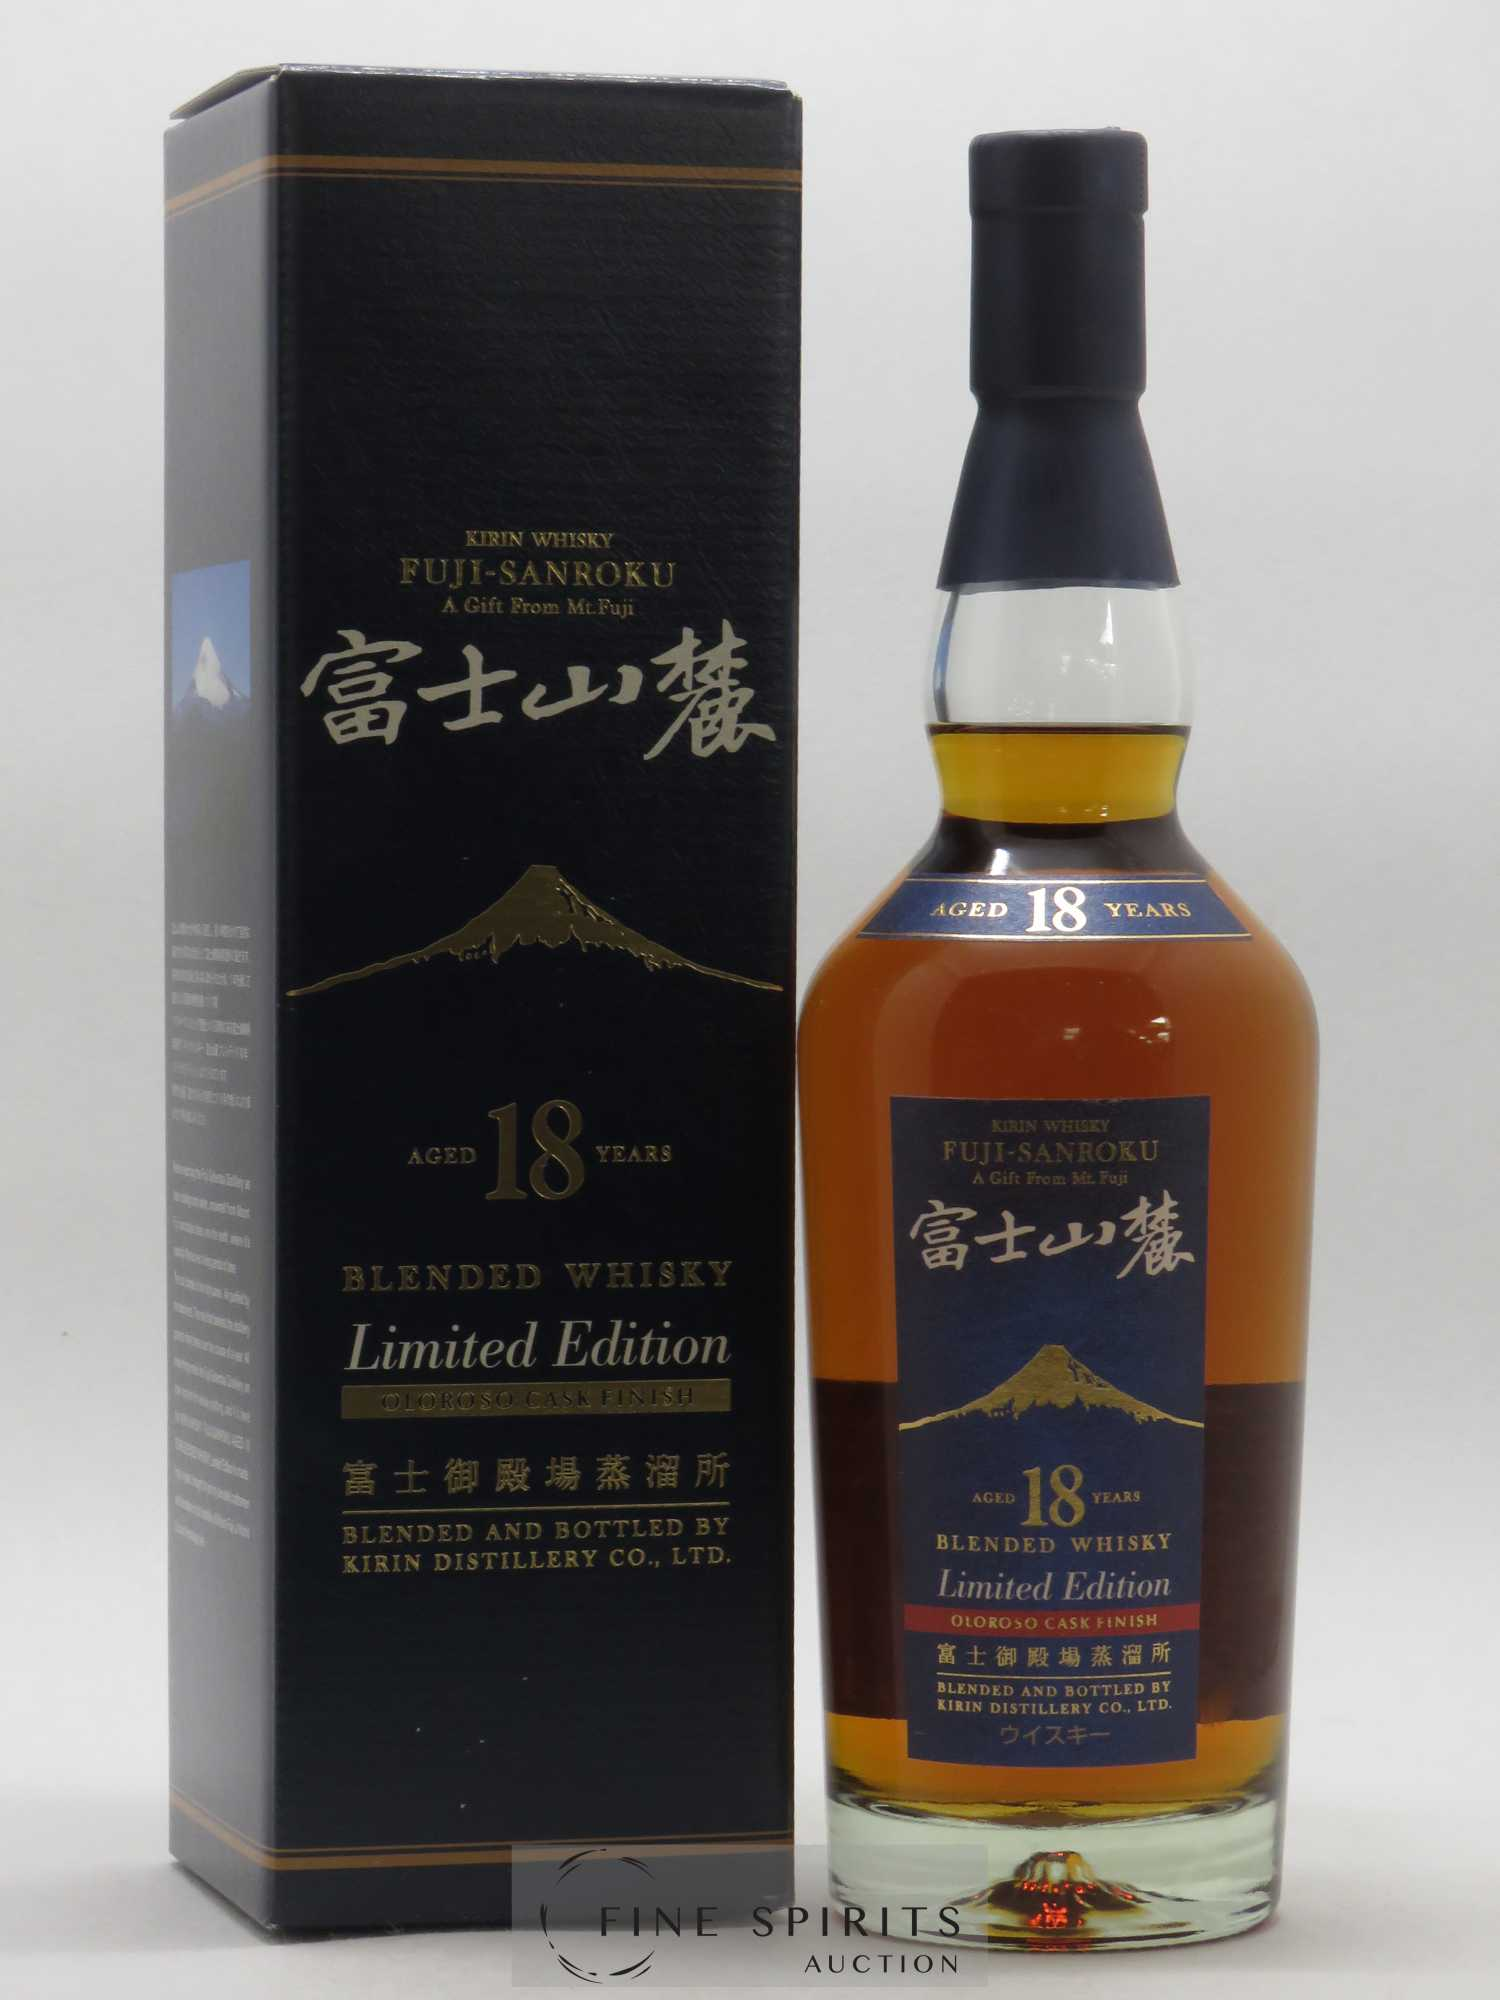 Kirin Fuji-Sanroku 18 years Of. A gift from Mt. Fuji Olorosso Cask Finish Limited Edition   - Lot de 1 Bouteille